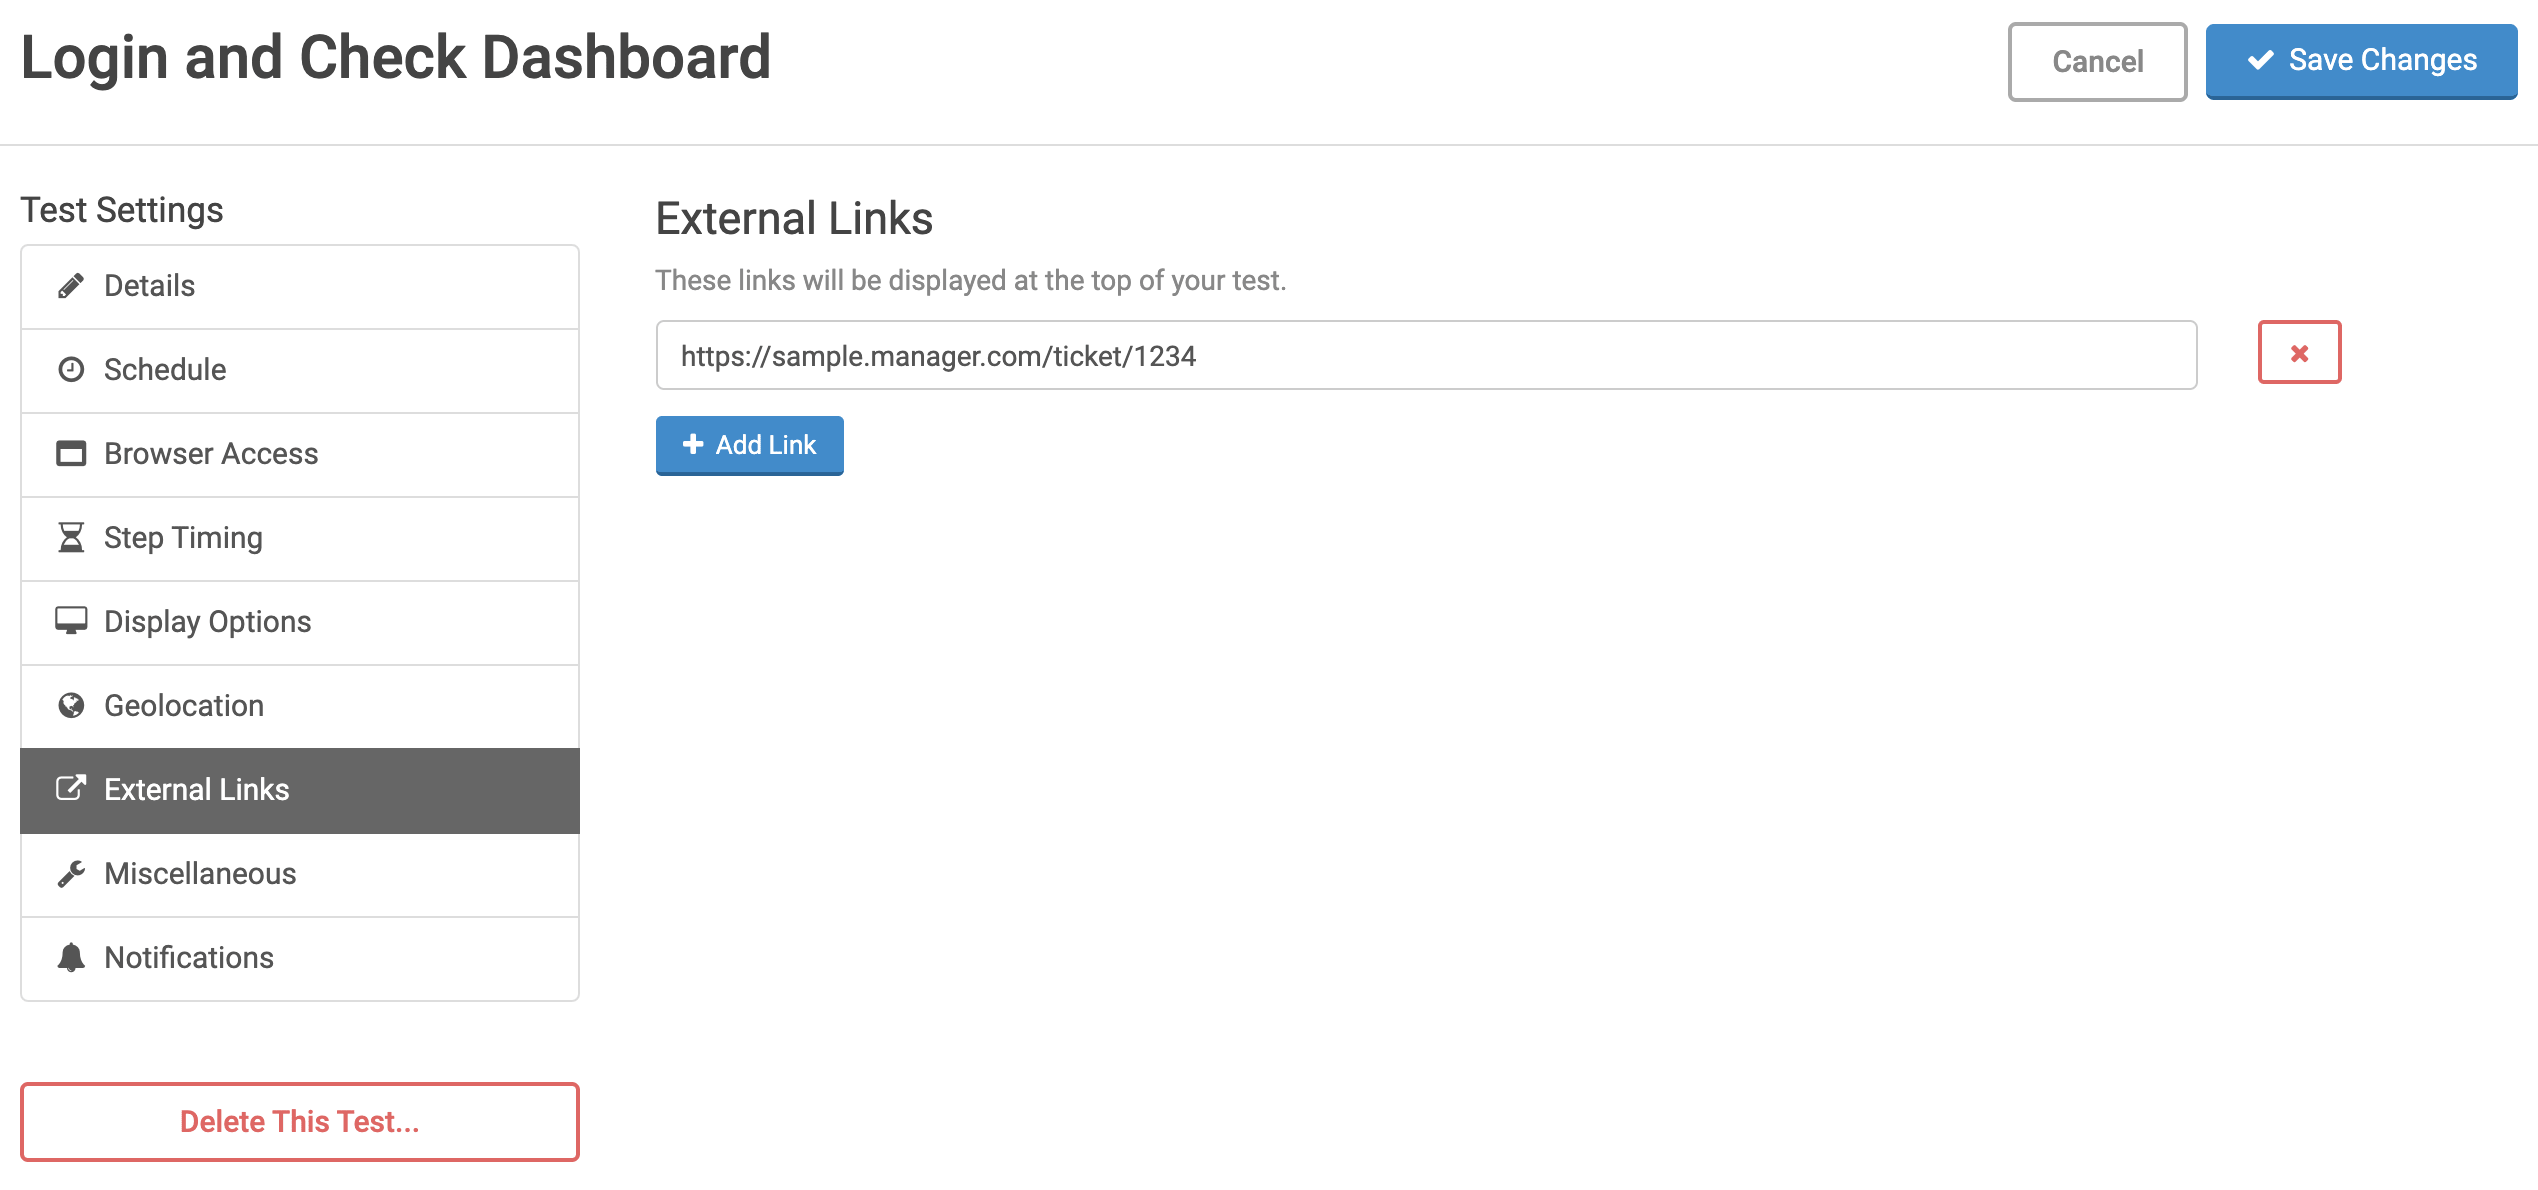 External Links settings